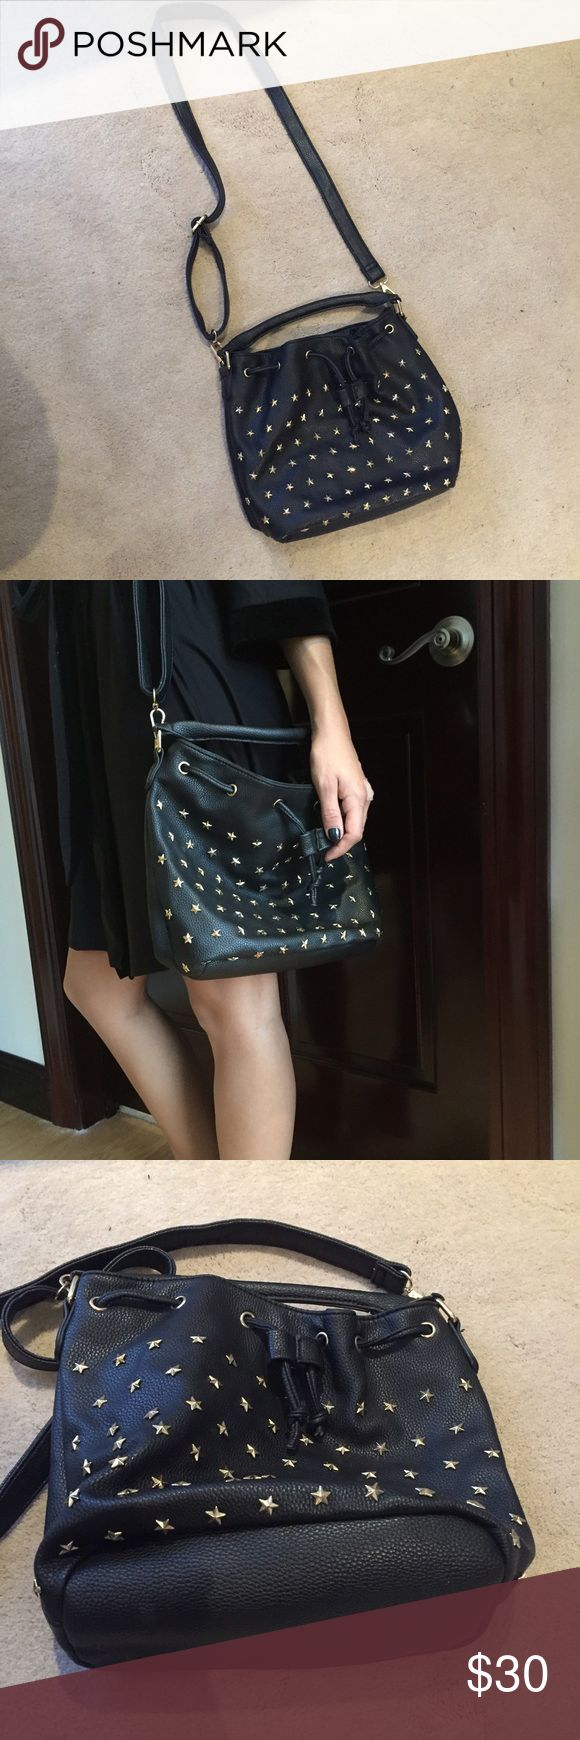 Black star studded purse Black star studded purse from LF. Gold stars. Zipper pouch inside. Perfect condition. Strap is adjustable and can also clip off. LF Bags